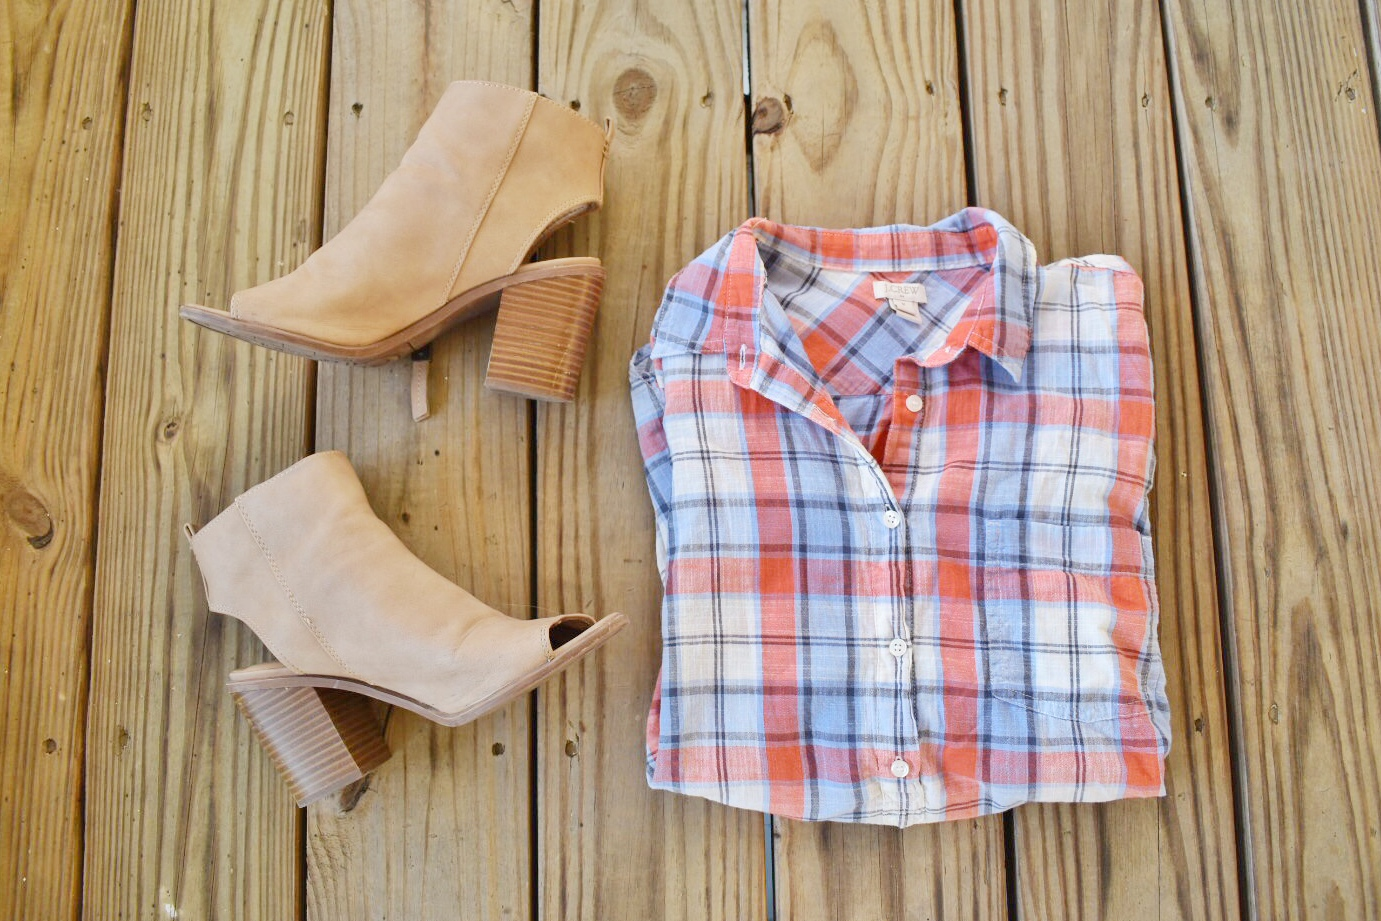 A pair of Circus by Sam Edelman brand tan, leather, heeled booties with a J.Crew brand plaid popover shirt.